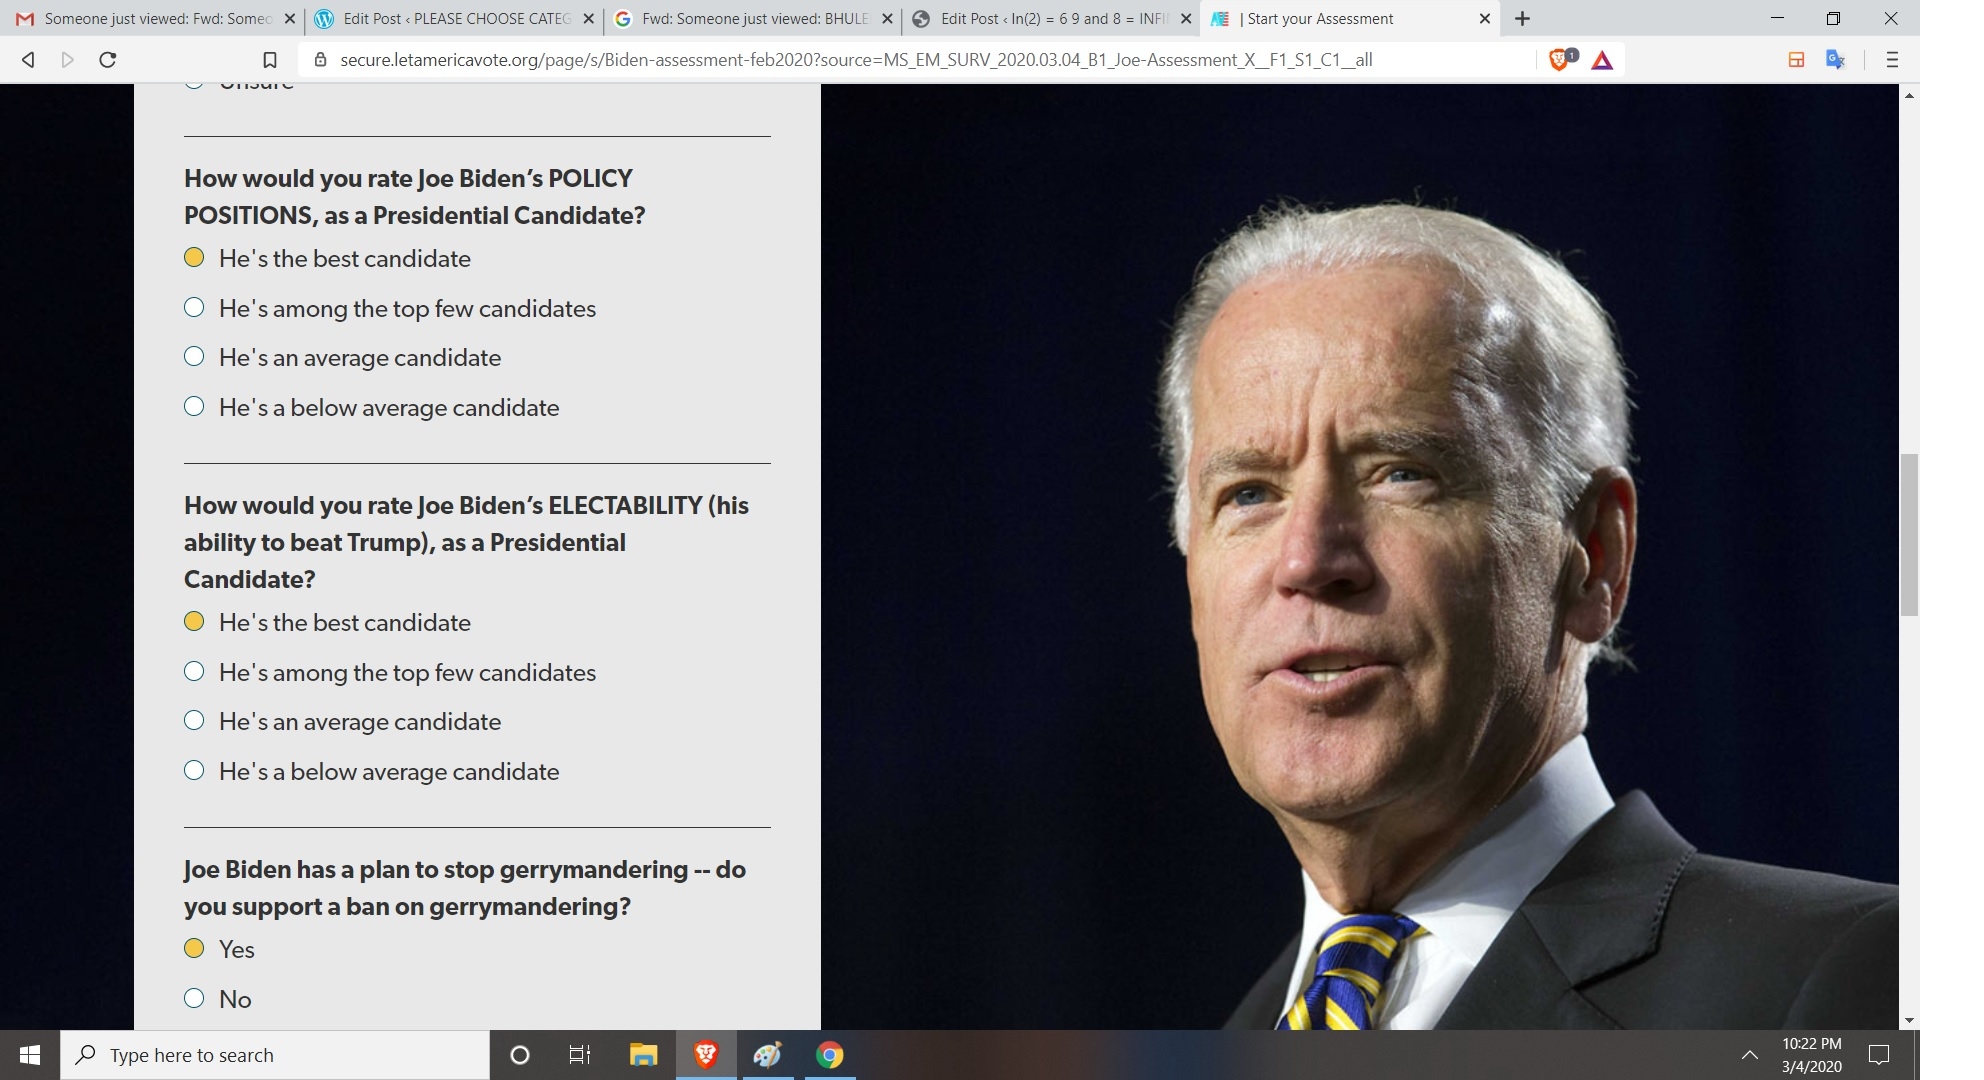 JOE BIDEN SURVER BY AJAY